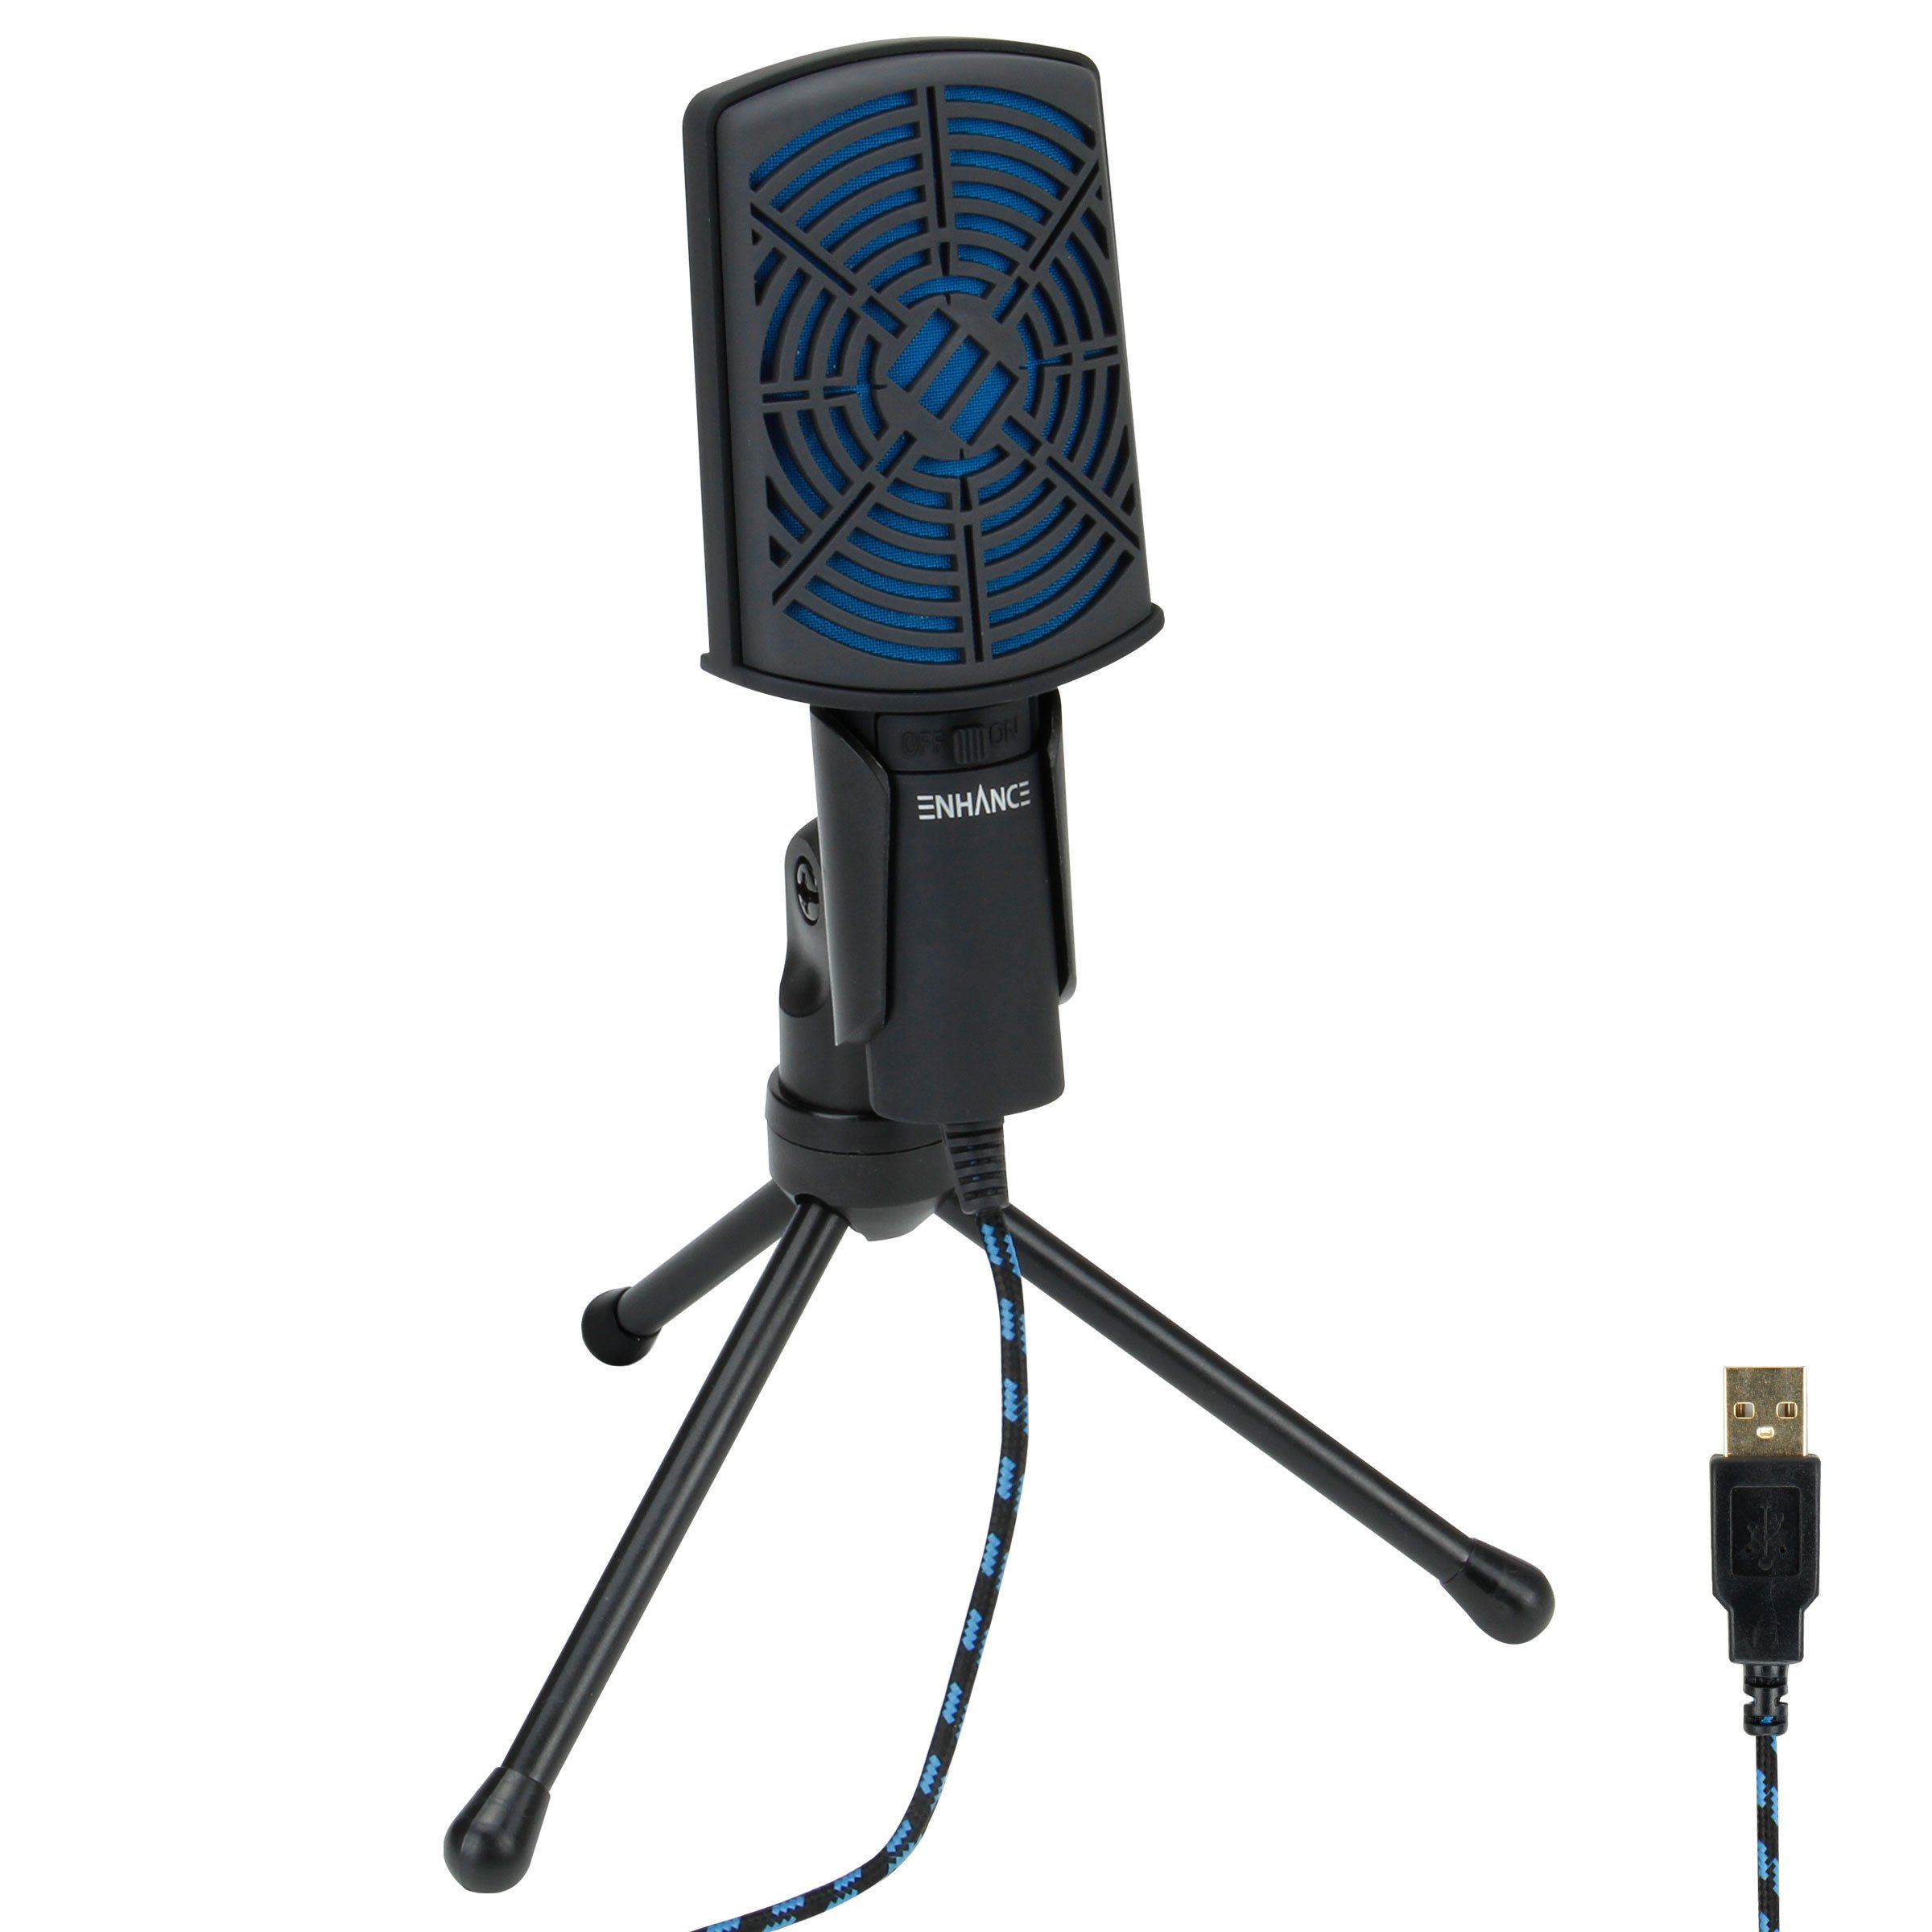 ENHANCE USB Condenser Gaming Microphone - Computer Desktop Mic for Streaming & Recording with Adjustable Stand Design and Mute Switch - For Skype, Conference Calls, Twitch, Youtube, and Discord - Blue by ENHANCE (Image #1)